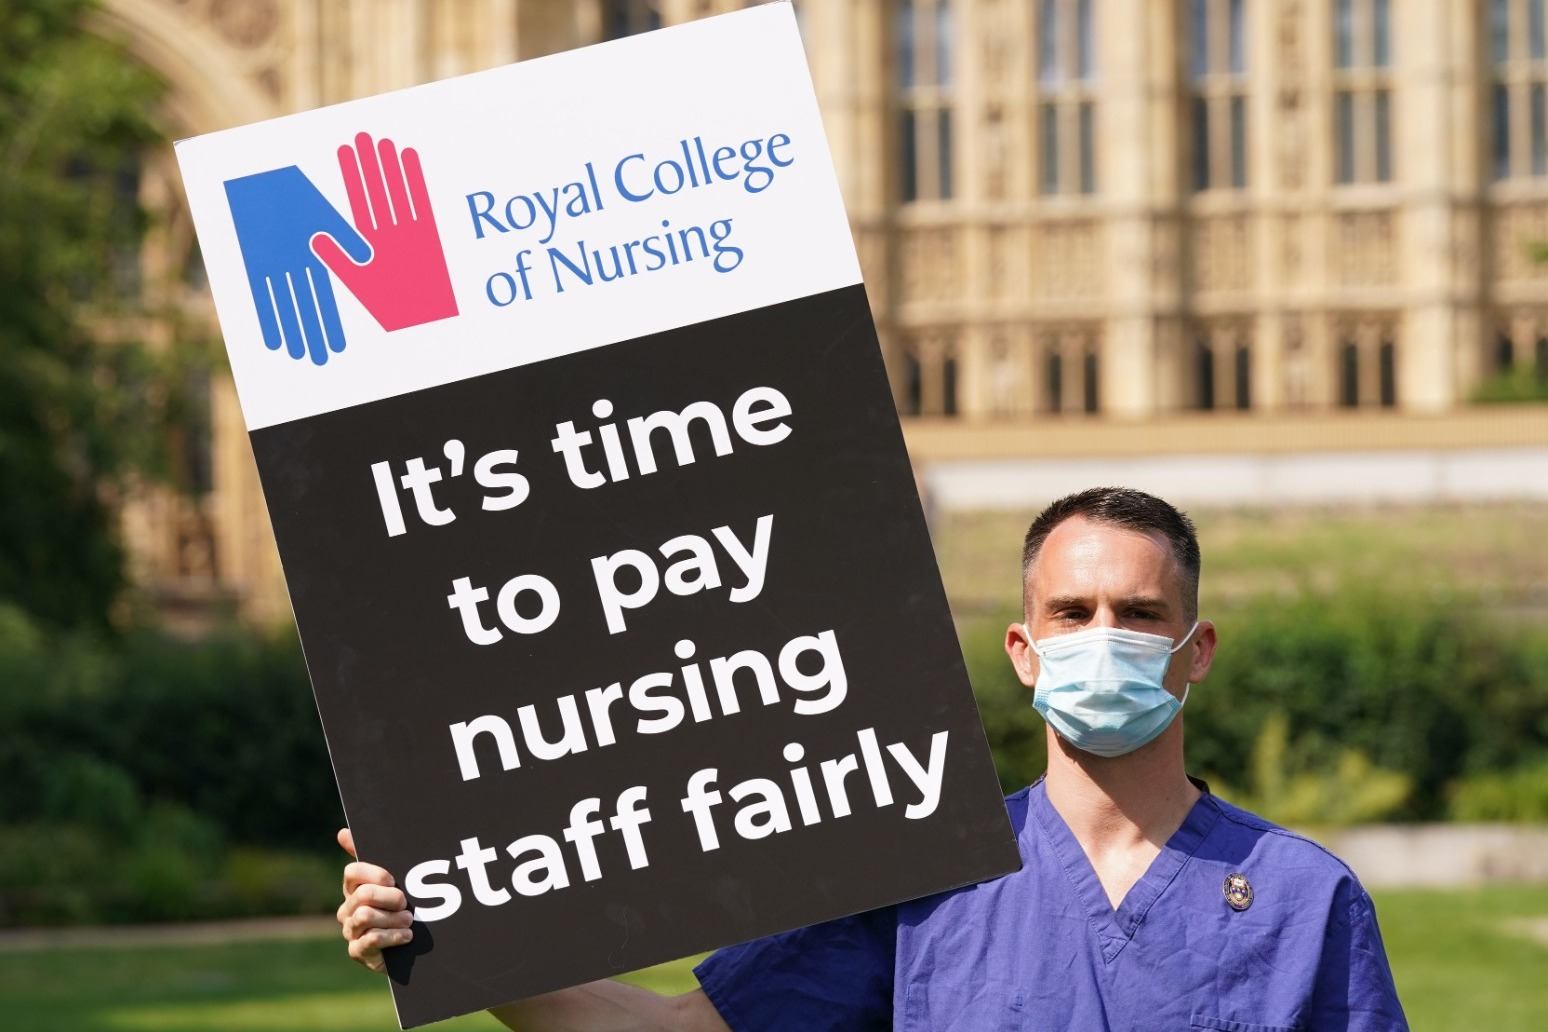 NHS staff in England will get 3% pay rise after day of confusion